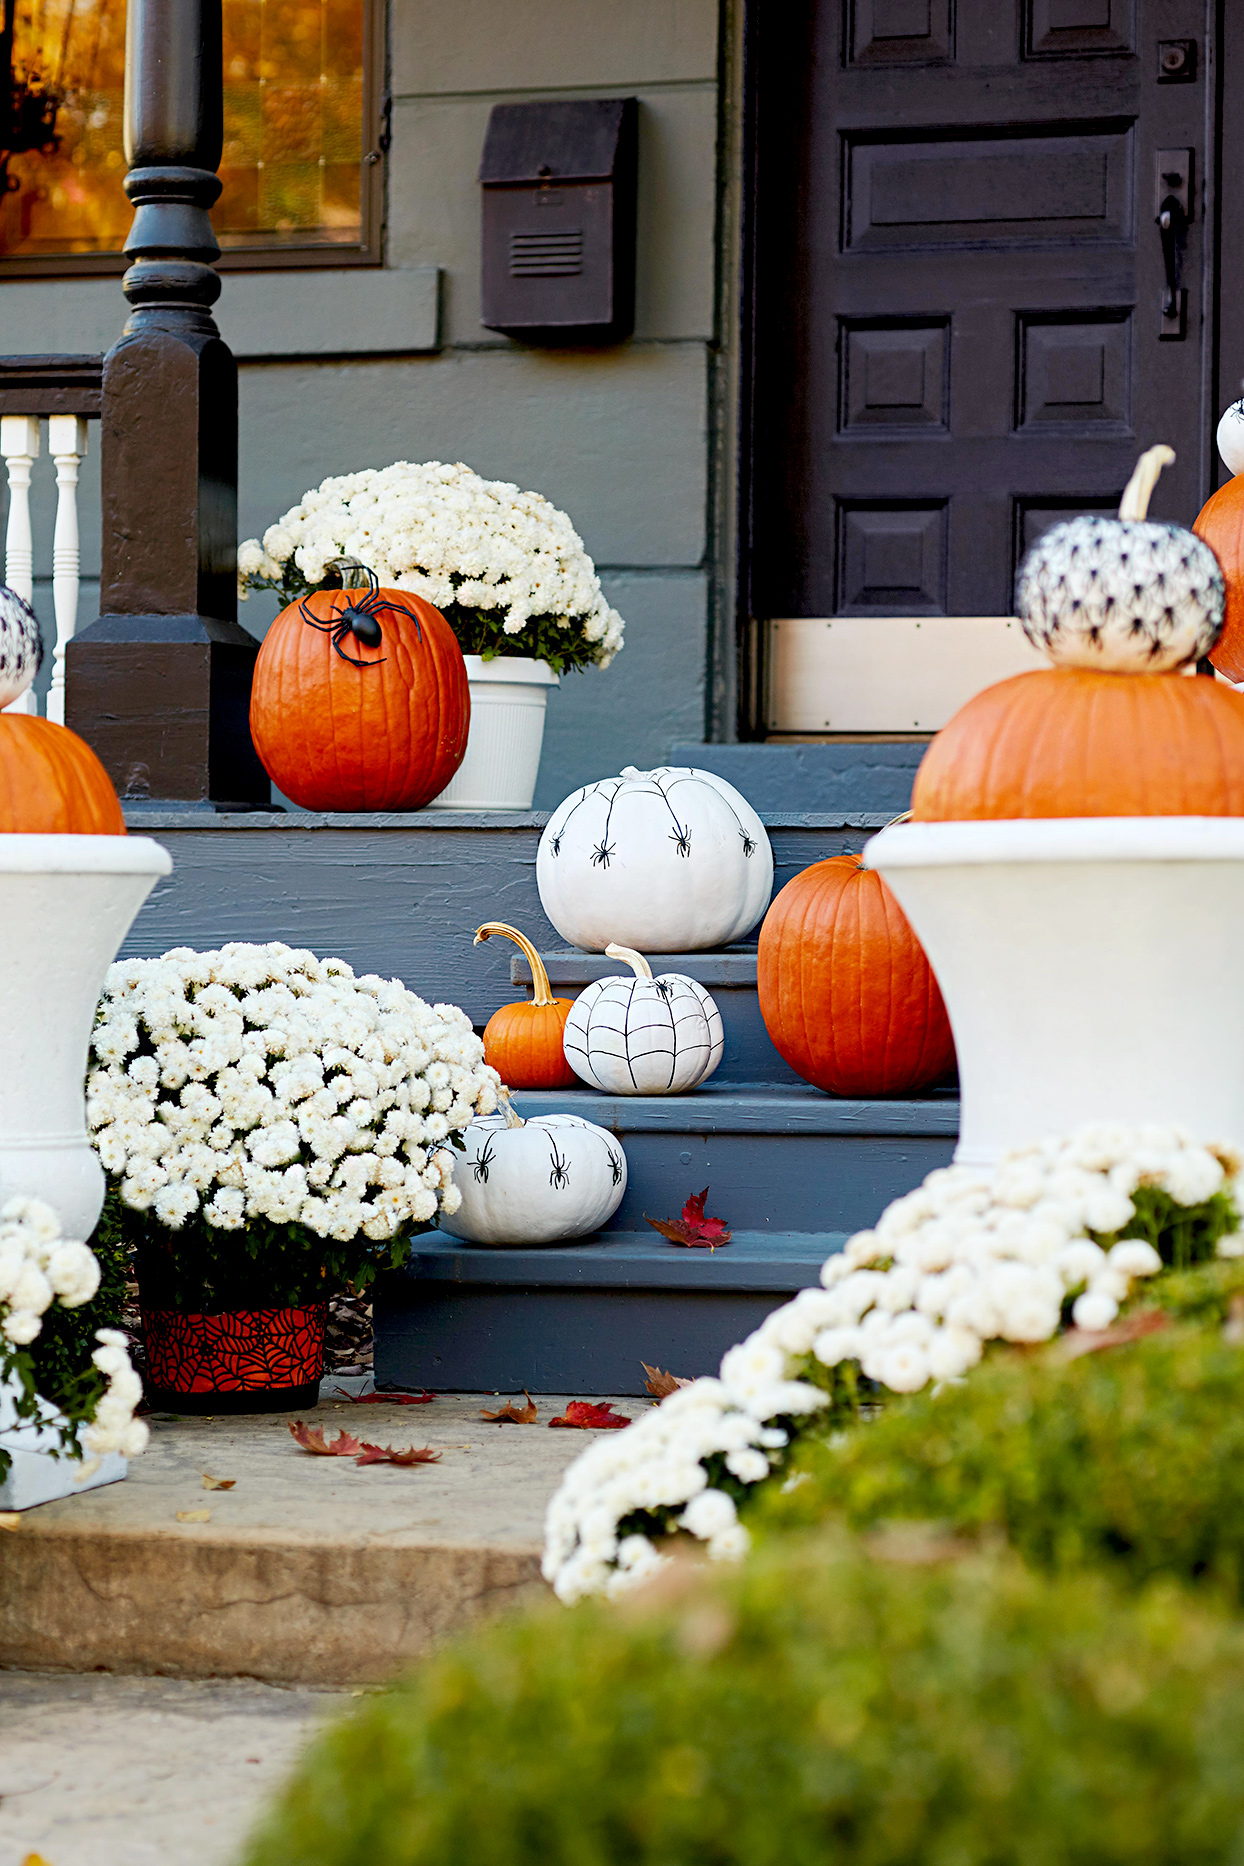 Front porch with pumpkins, white flowers